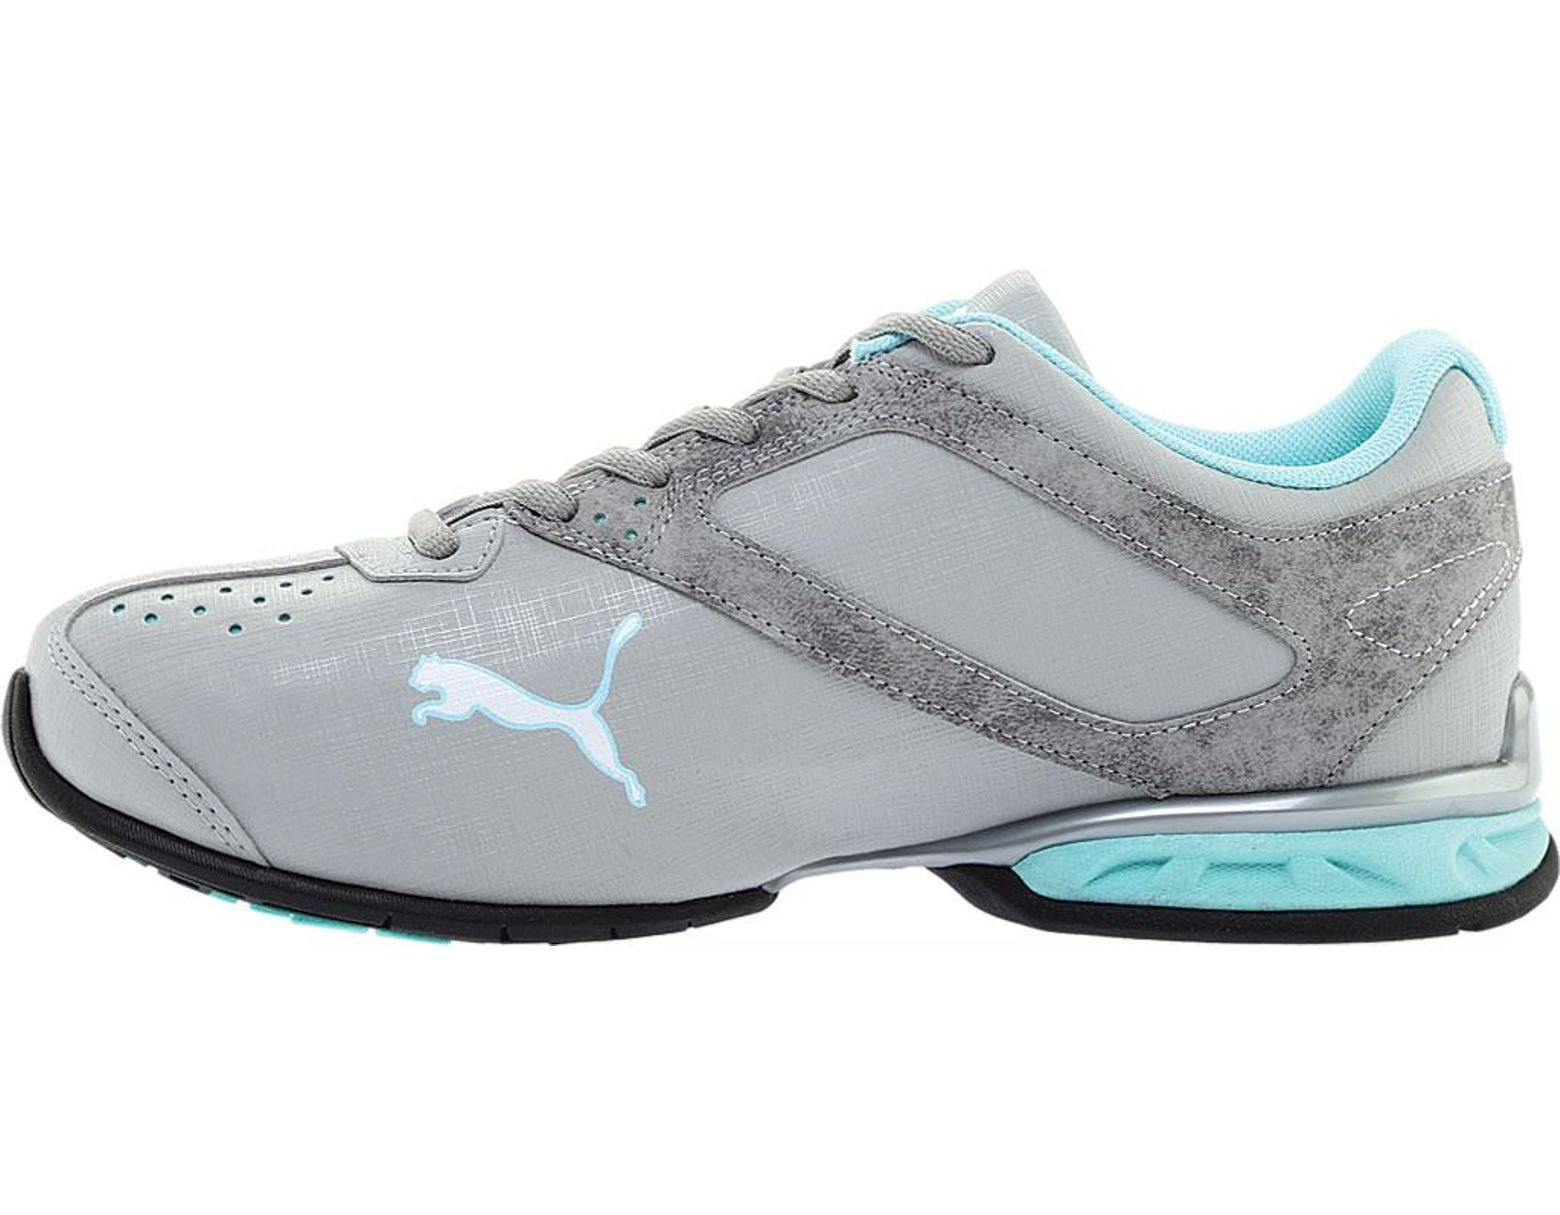 buy online af2a3 37475 Lyst - PUMA Tazon 6 Accent Cross Training Shoe in Blue